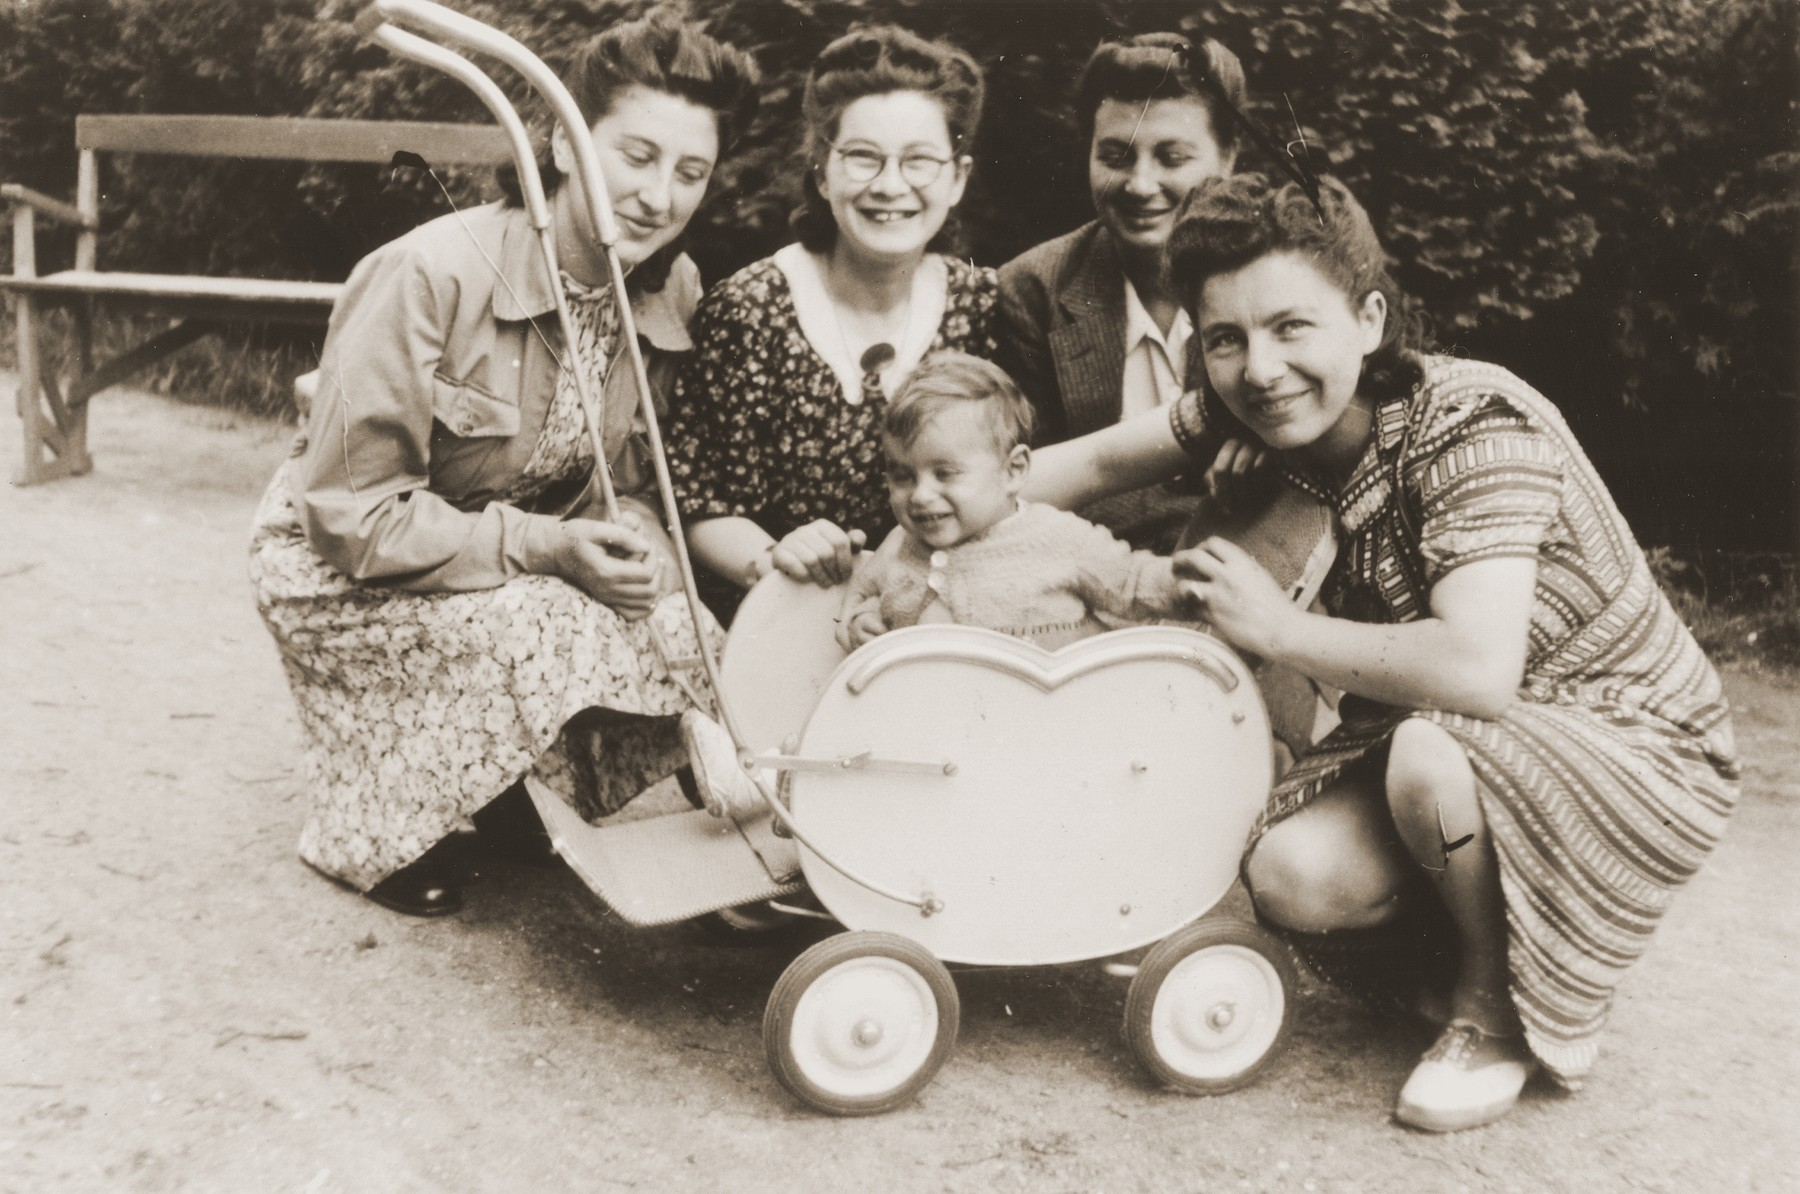 A young Jewish child sits in a stroller in a park surrounded by his mother (right) and three aunts.  Pictured is the toddler, Rene Gruneberg; his mother, Bertha Gruneberg; and his aunts (left to right): Bep Meyer; Bettie Meijer, and Renee (Sara) Meijer.  The child survived the war, but both his parents were killed.